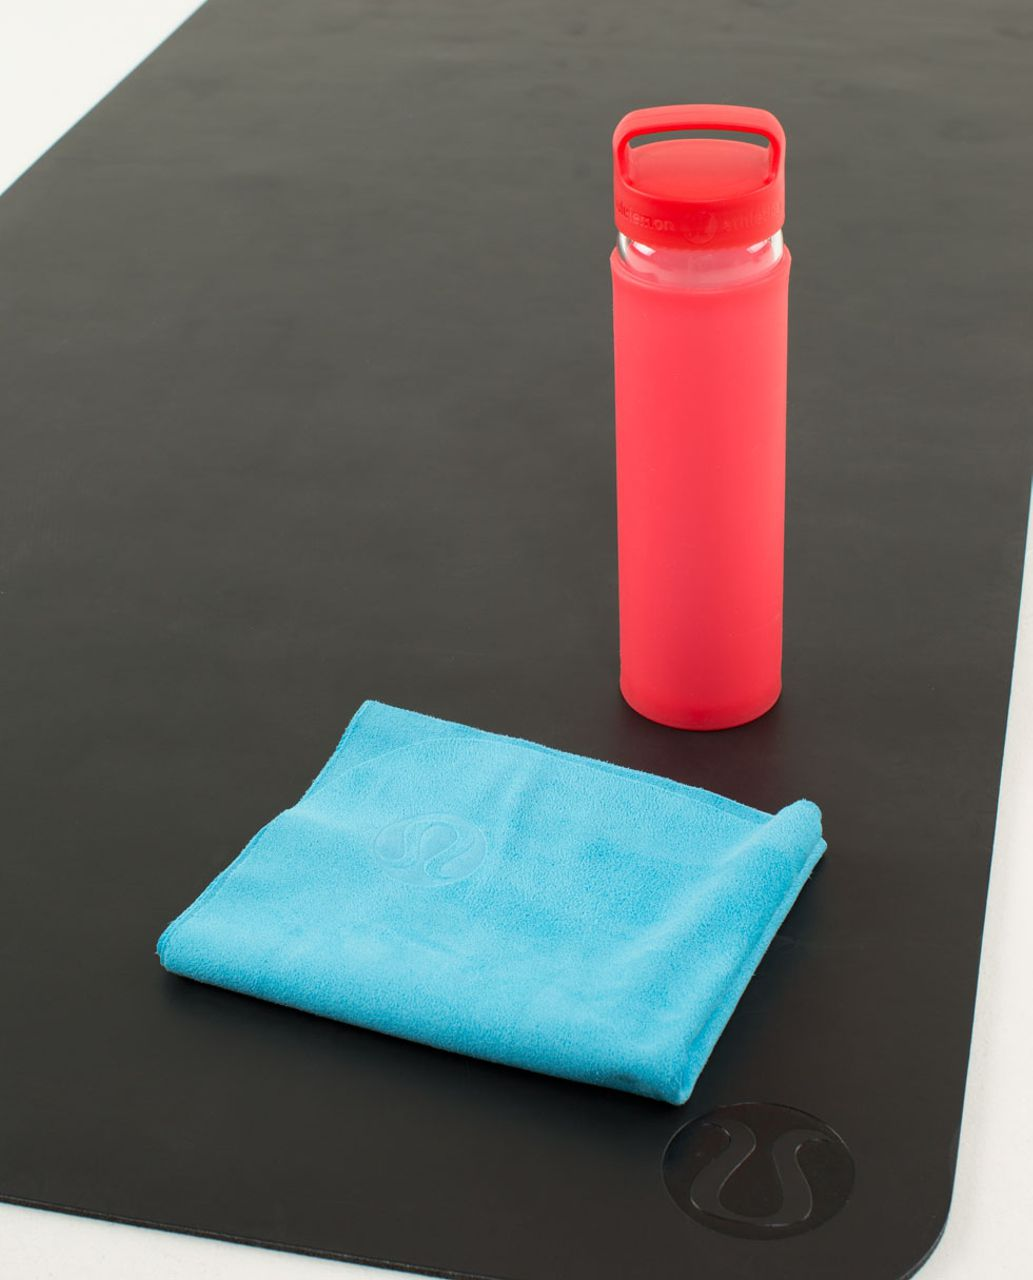 Lululemon The (Small) Towel - Spry Blue